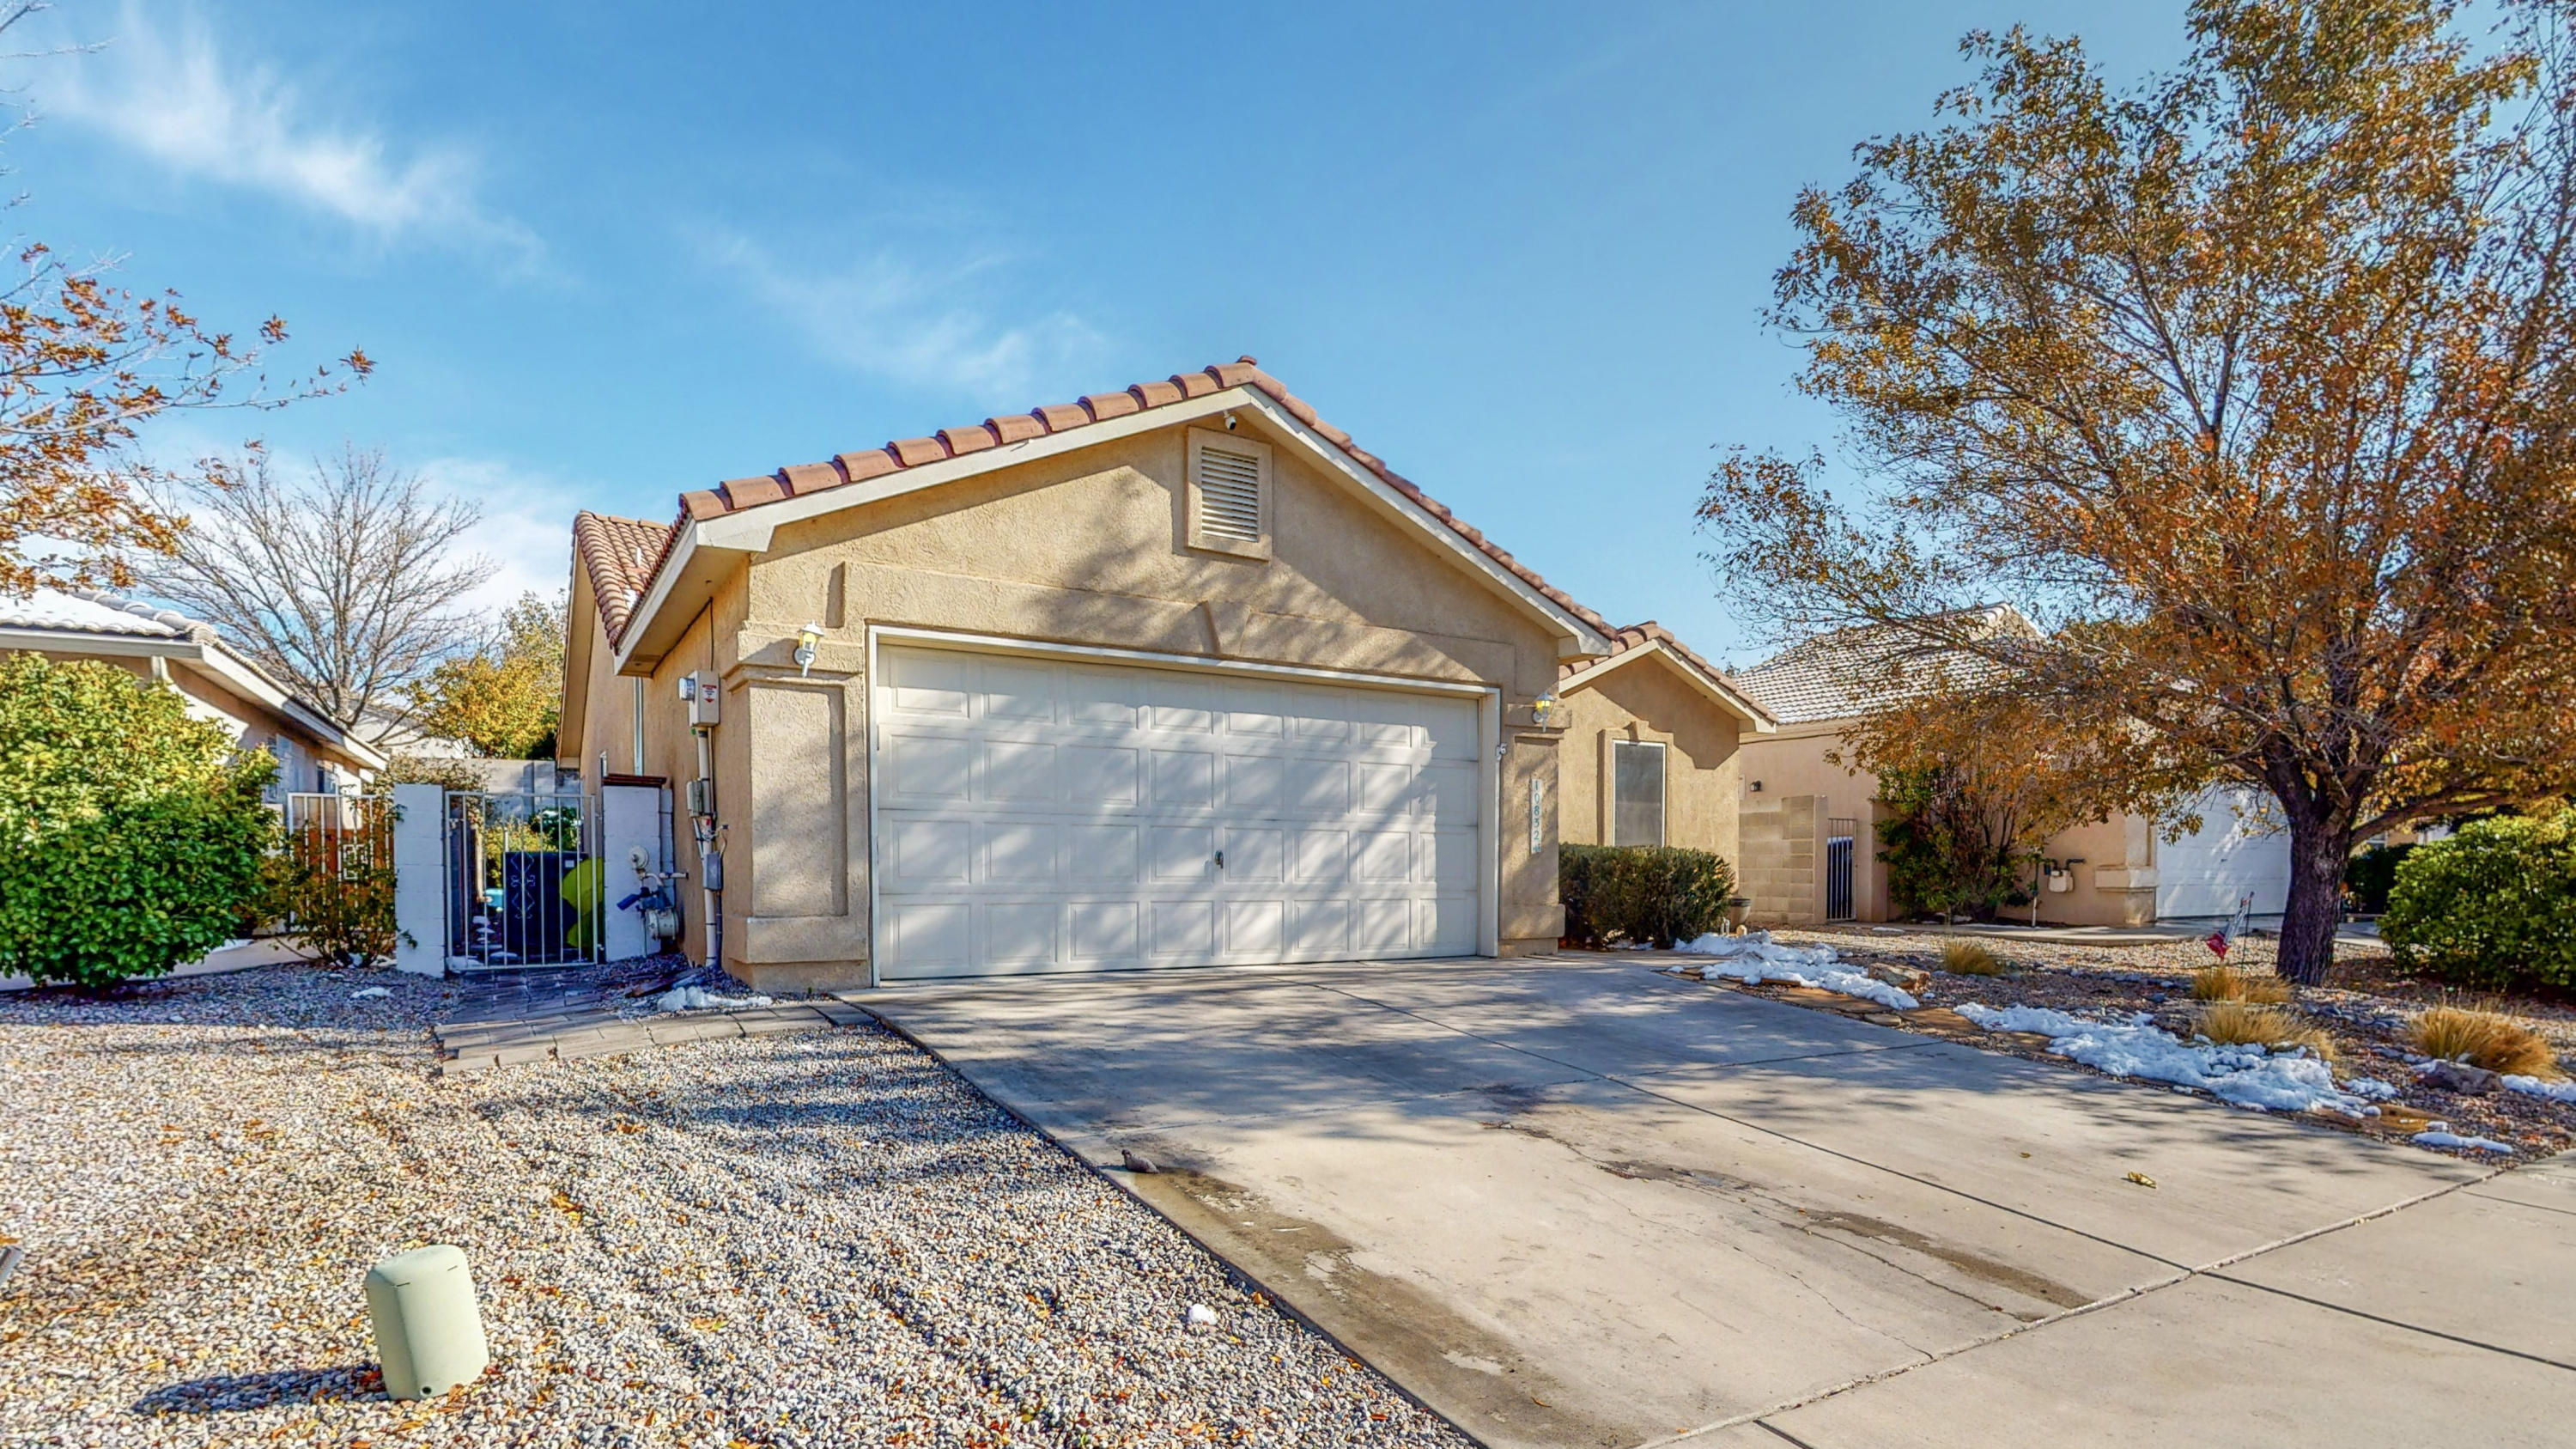 Terrific open floor plan in desirable Willow Wood neighborhood close to base entrance on a private street.  Retreat to the Master Bedroom, with walk-in closet, or entertain in the tiered back yard.  Spend time with family in the open floor plan.  Xeriscaped front yard and pitched tile roof draw the eye to this beautiful home on a quiet street.  Convenient to KAFB, Sandia Labs, the Tech Center, Manzano Mesa Community Center, Costco, the Nuclear Museum and more!  Currently rented.